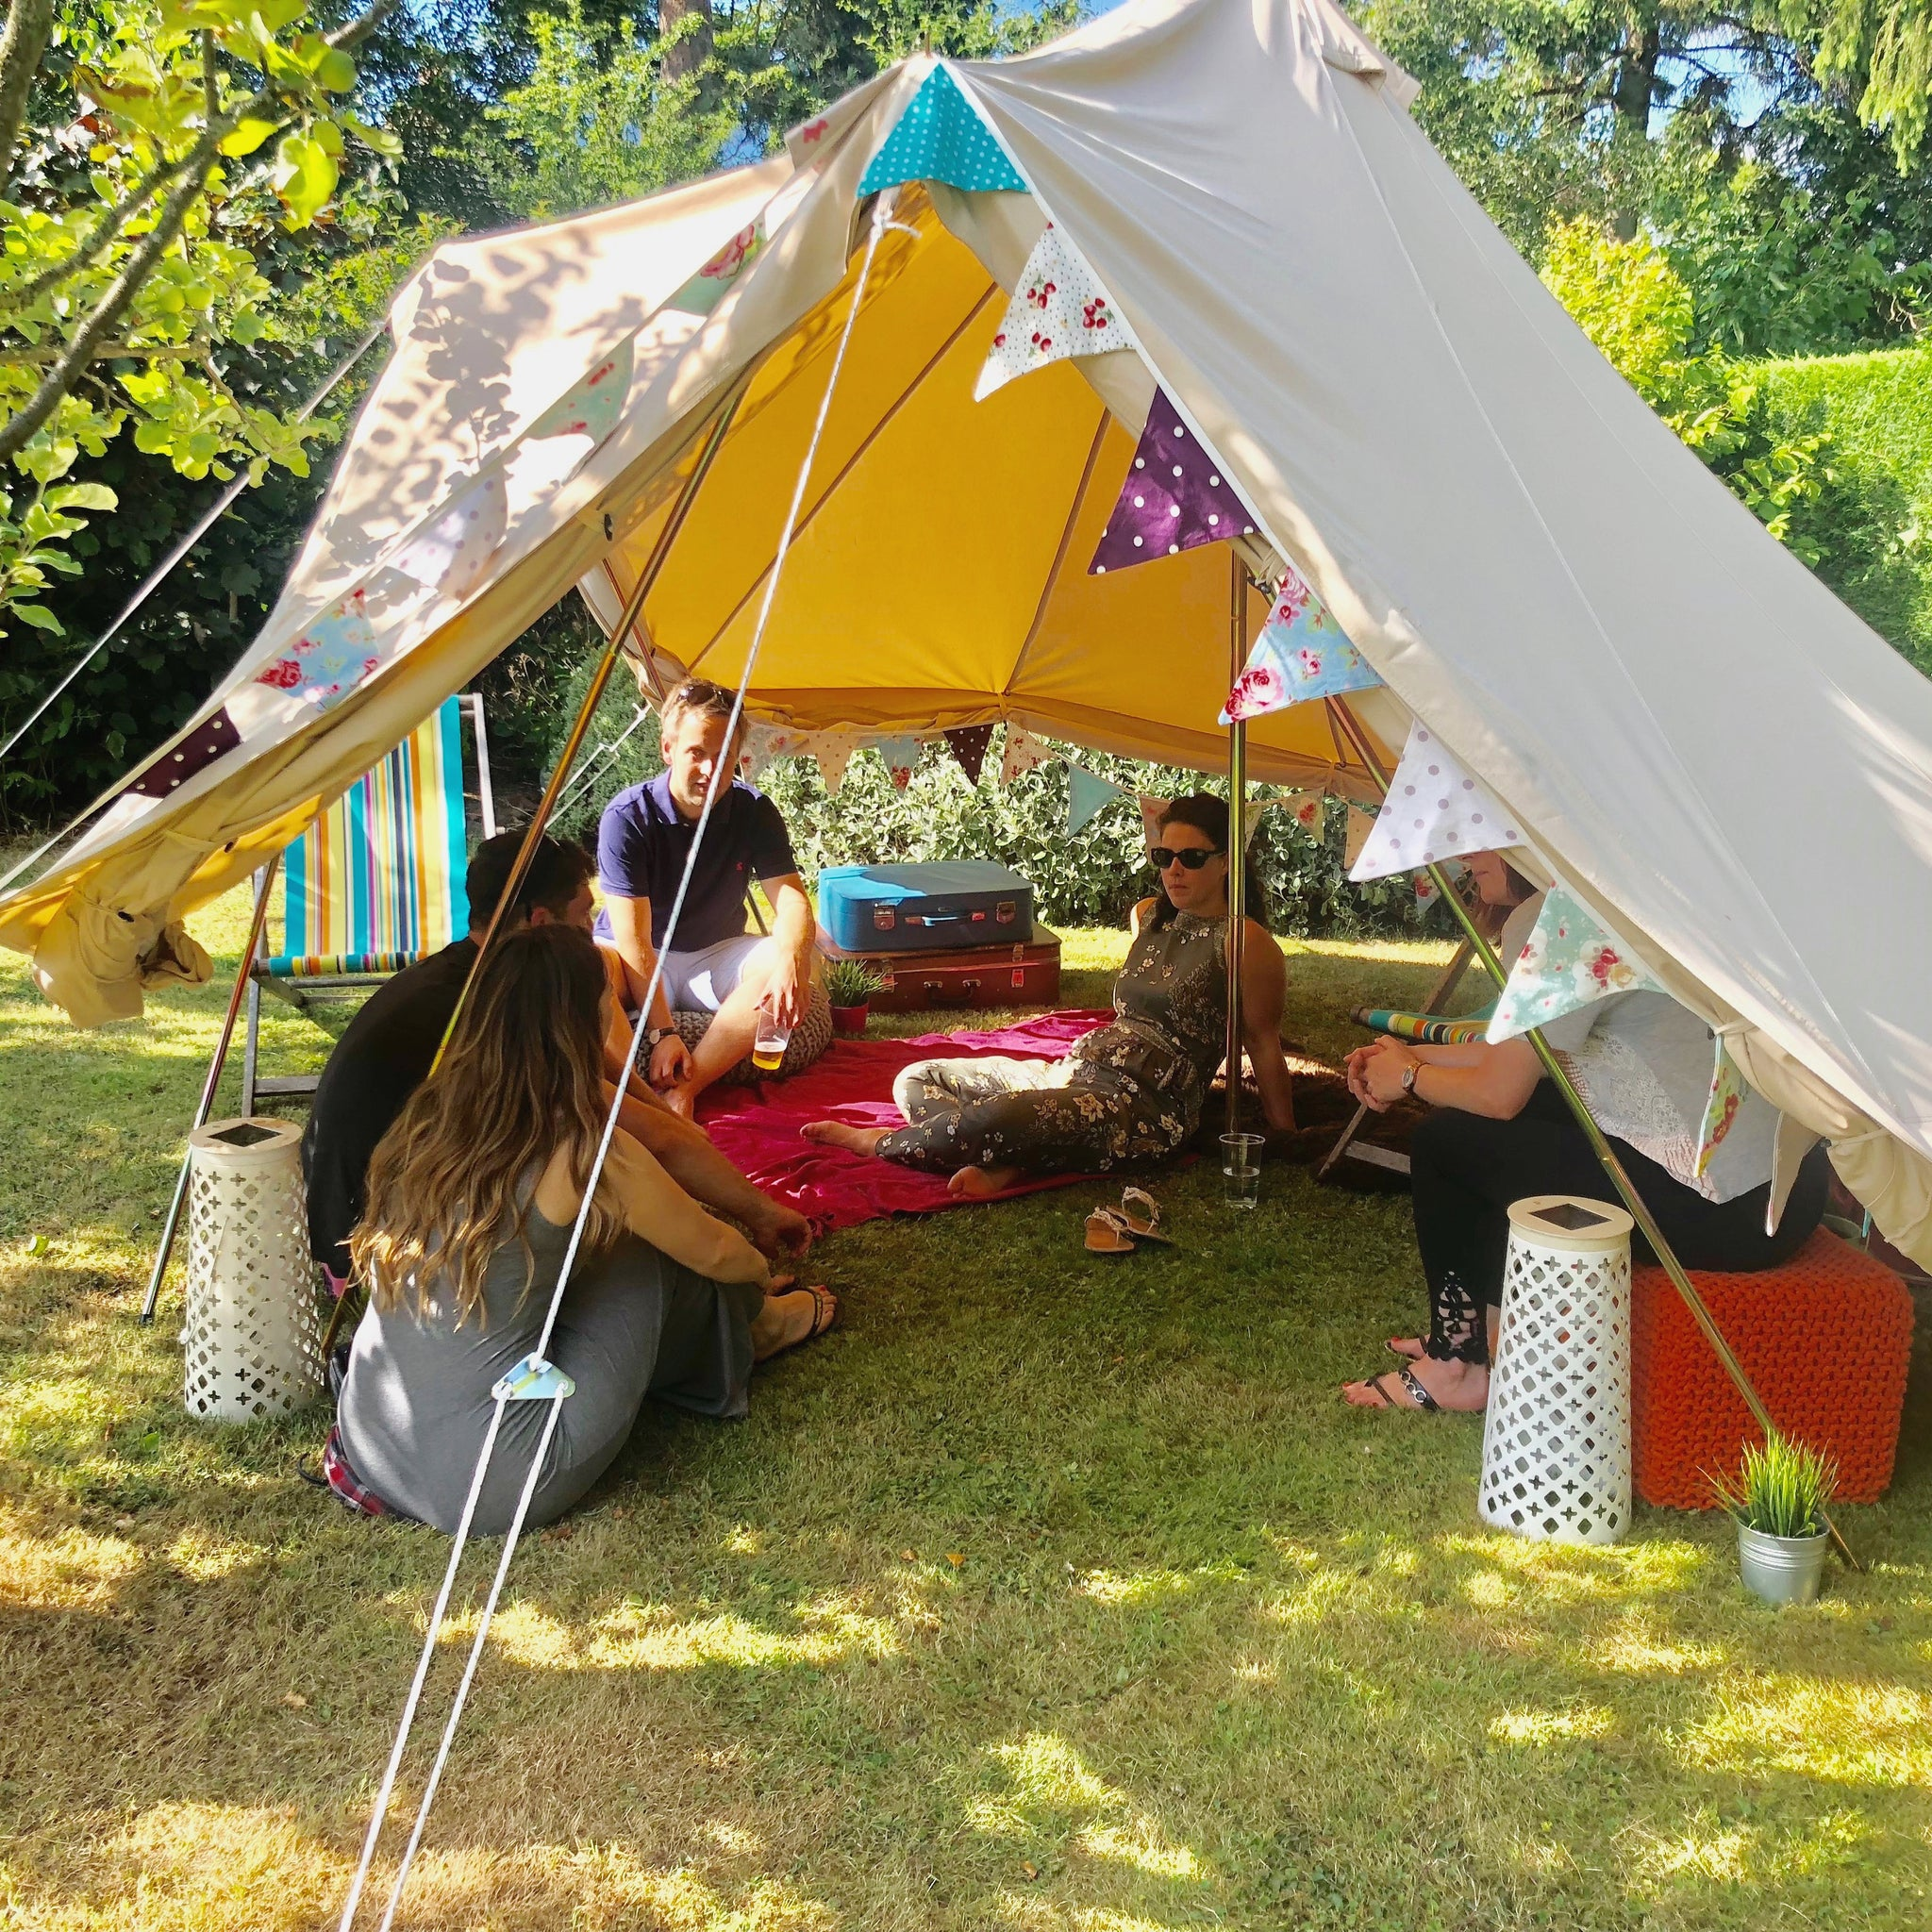 Camping's Coming Home: Bell Tents in the Garden